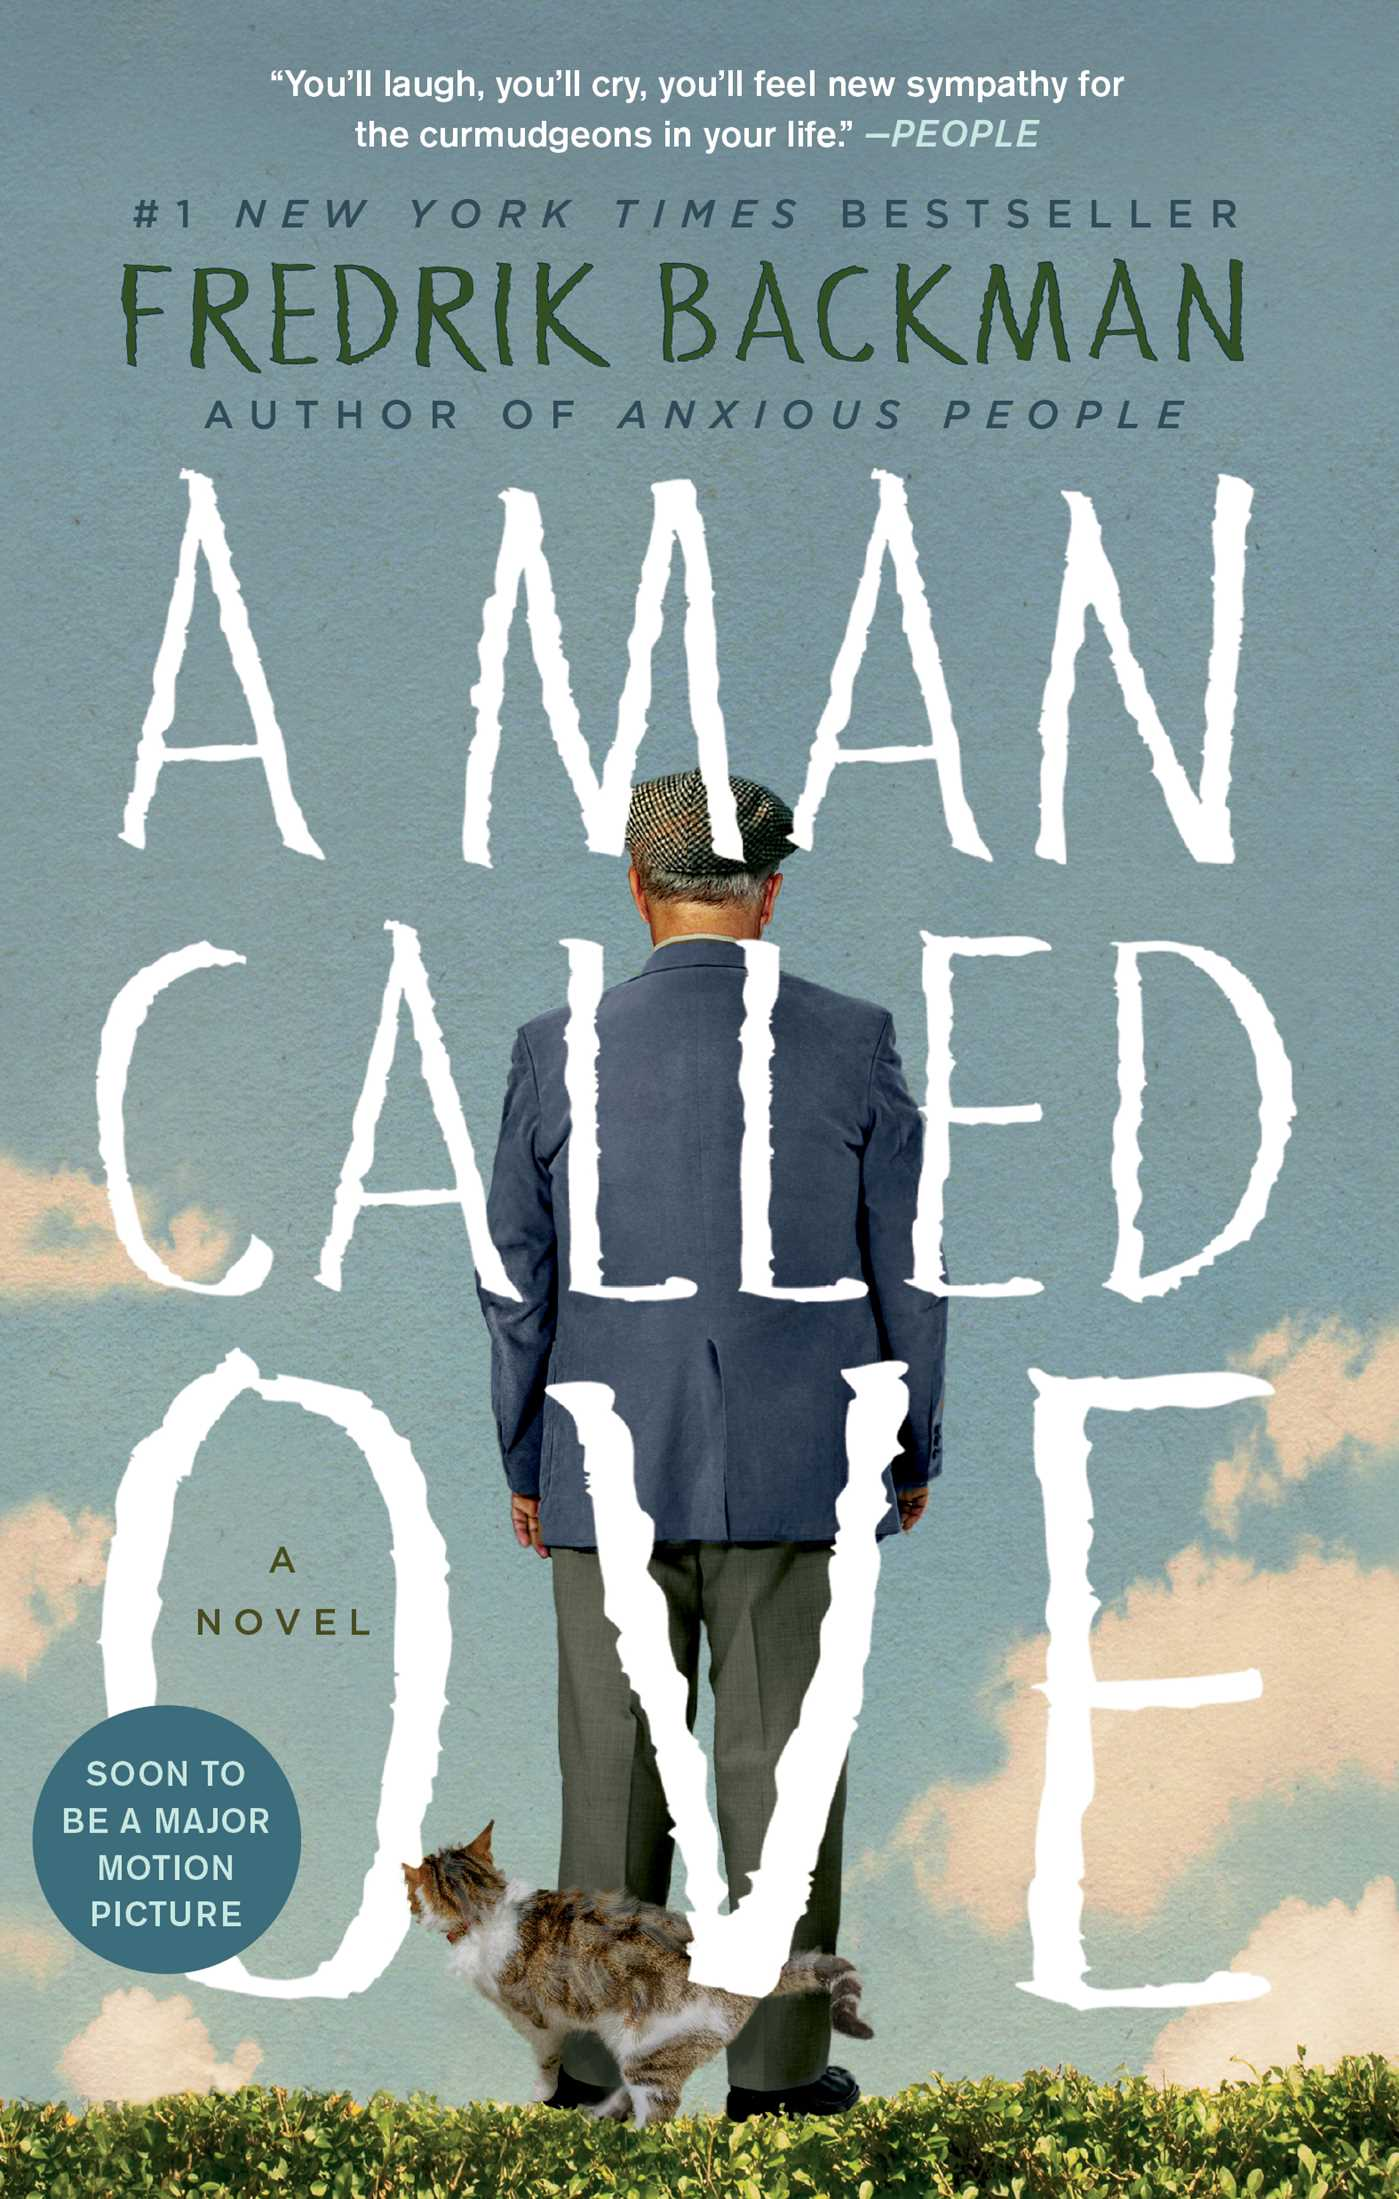 A man called ove 9781476738024 hr